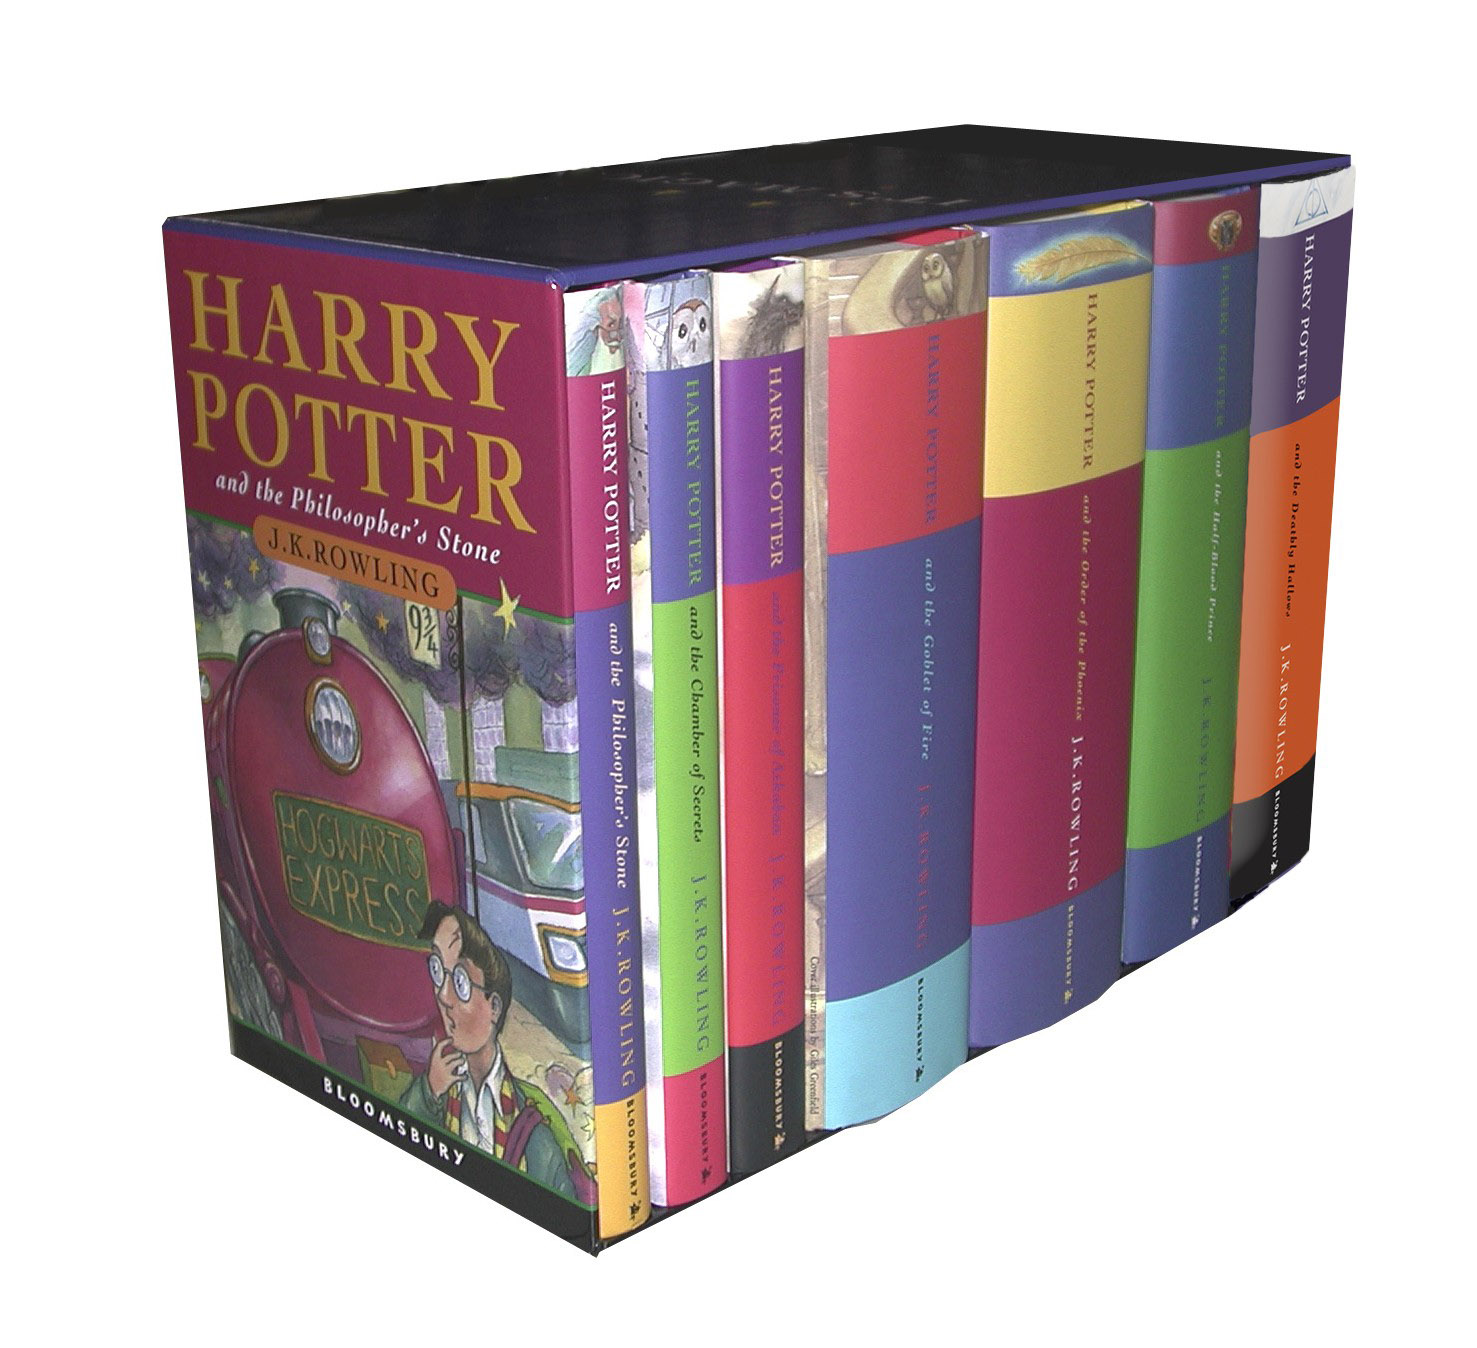 Harry Potter Hardback Boxed Set x 7 by J.K. Rowling, ISBN: 9780747593690